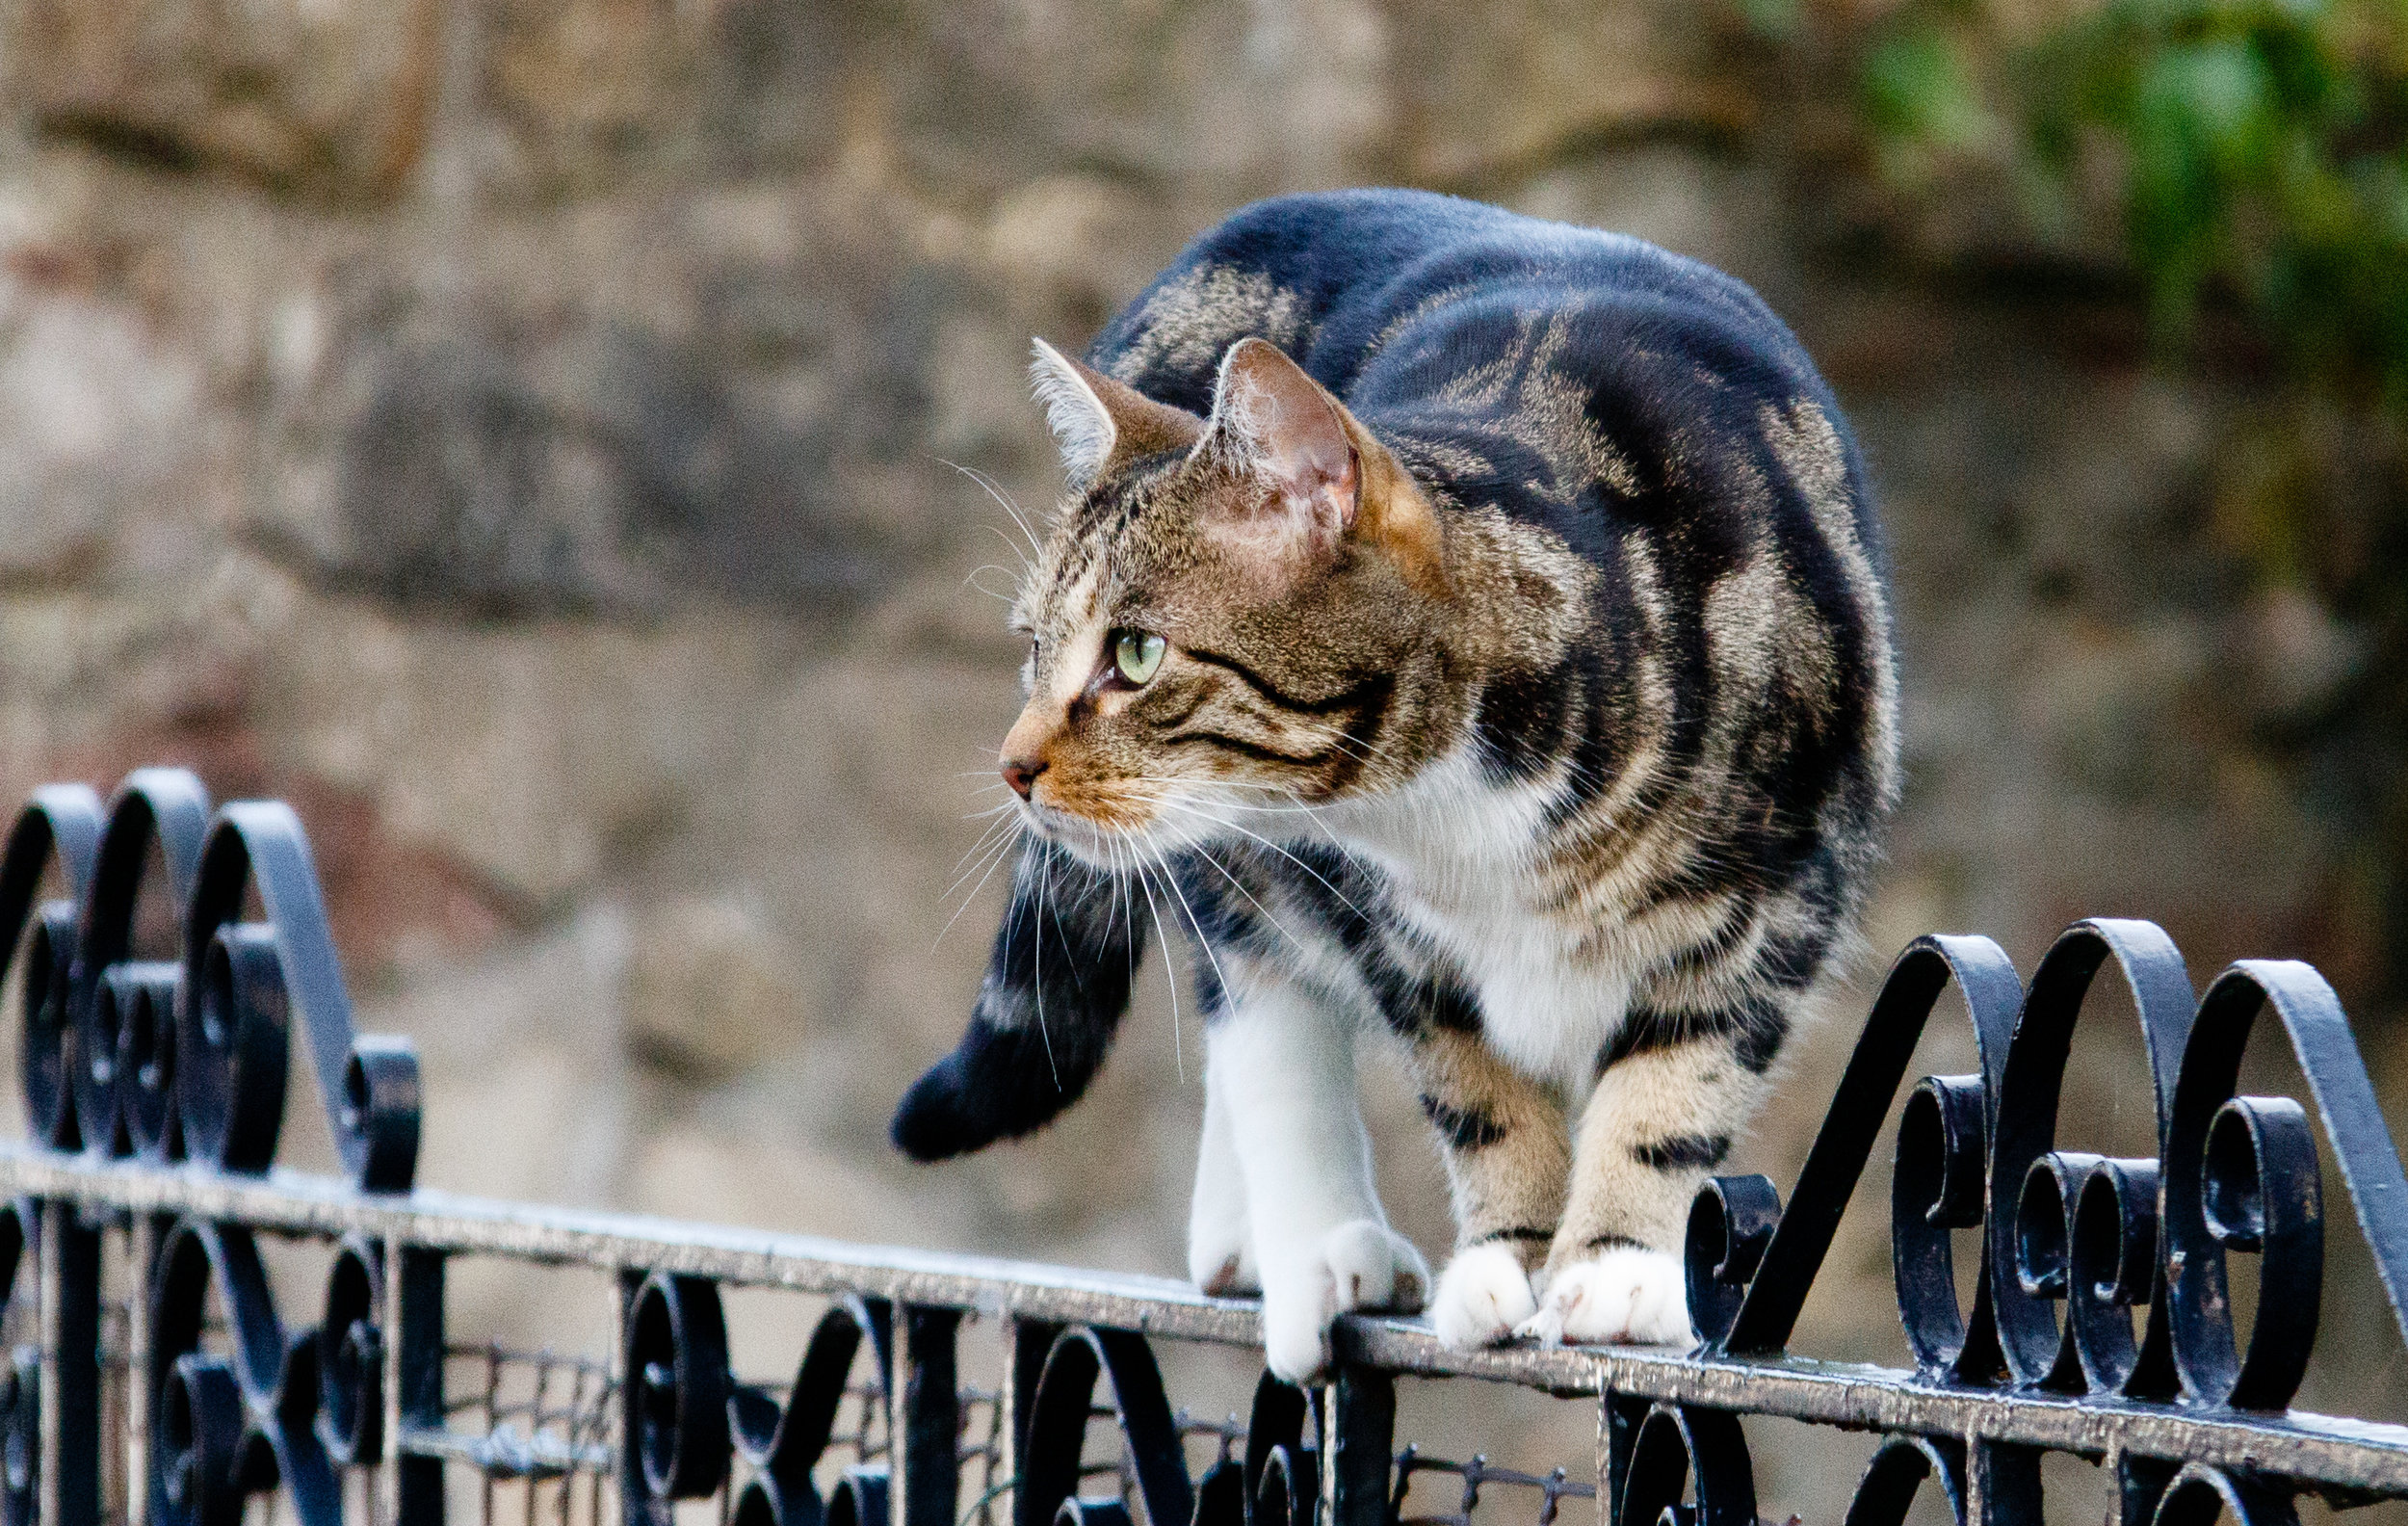 The cat looks like it's very well balanced. You might not say that if you'd seen how gingerly it was walking.